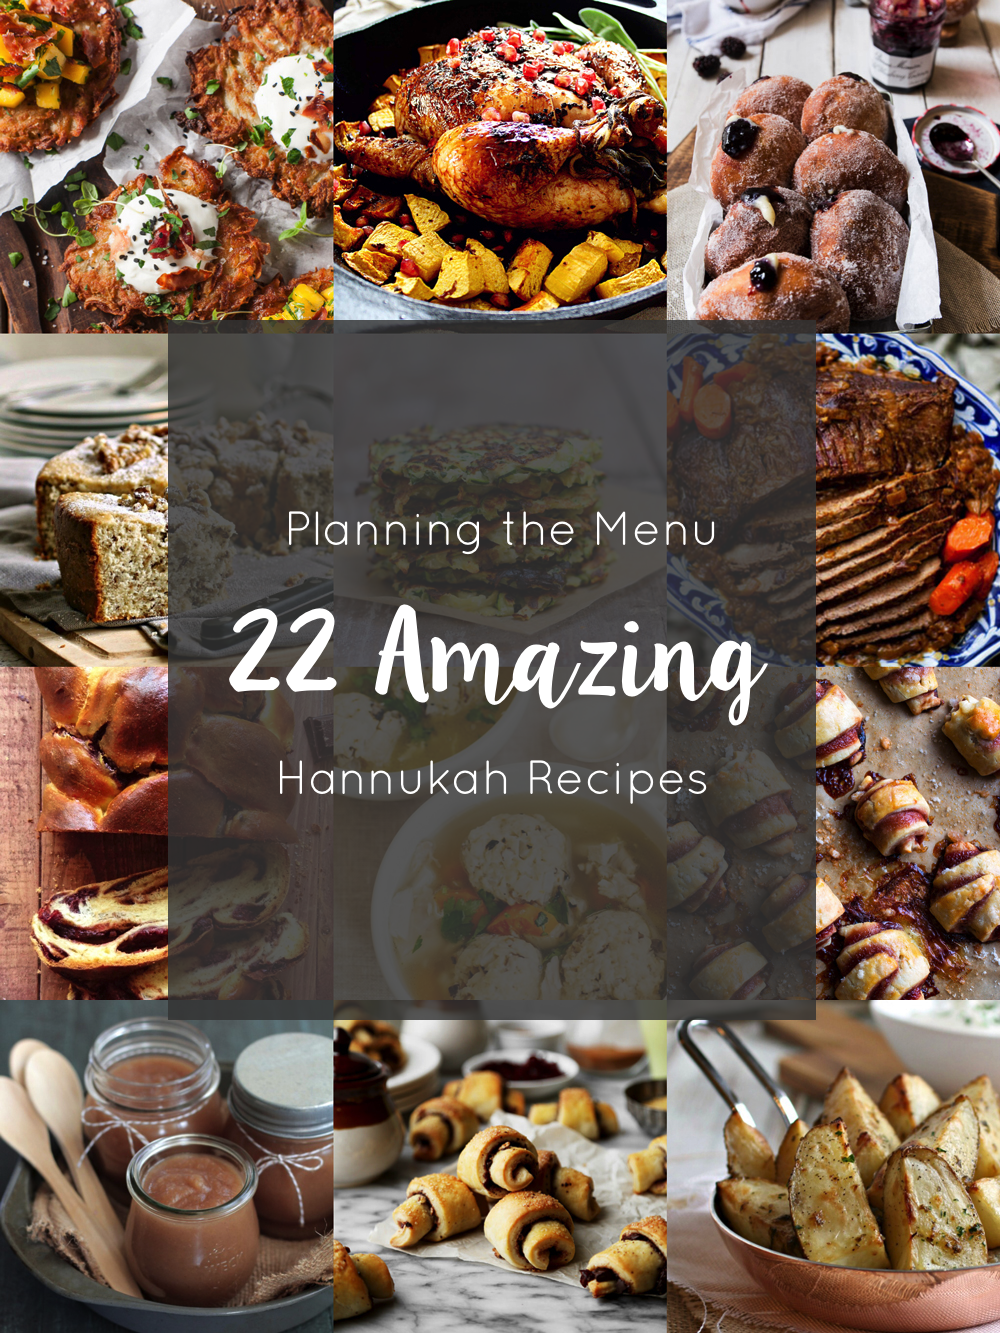 Planning the Menu - 22 Amazing Hannukah Recipes